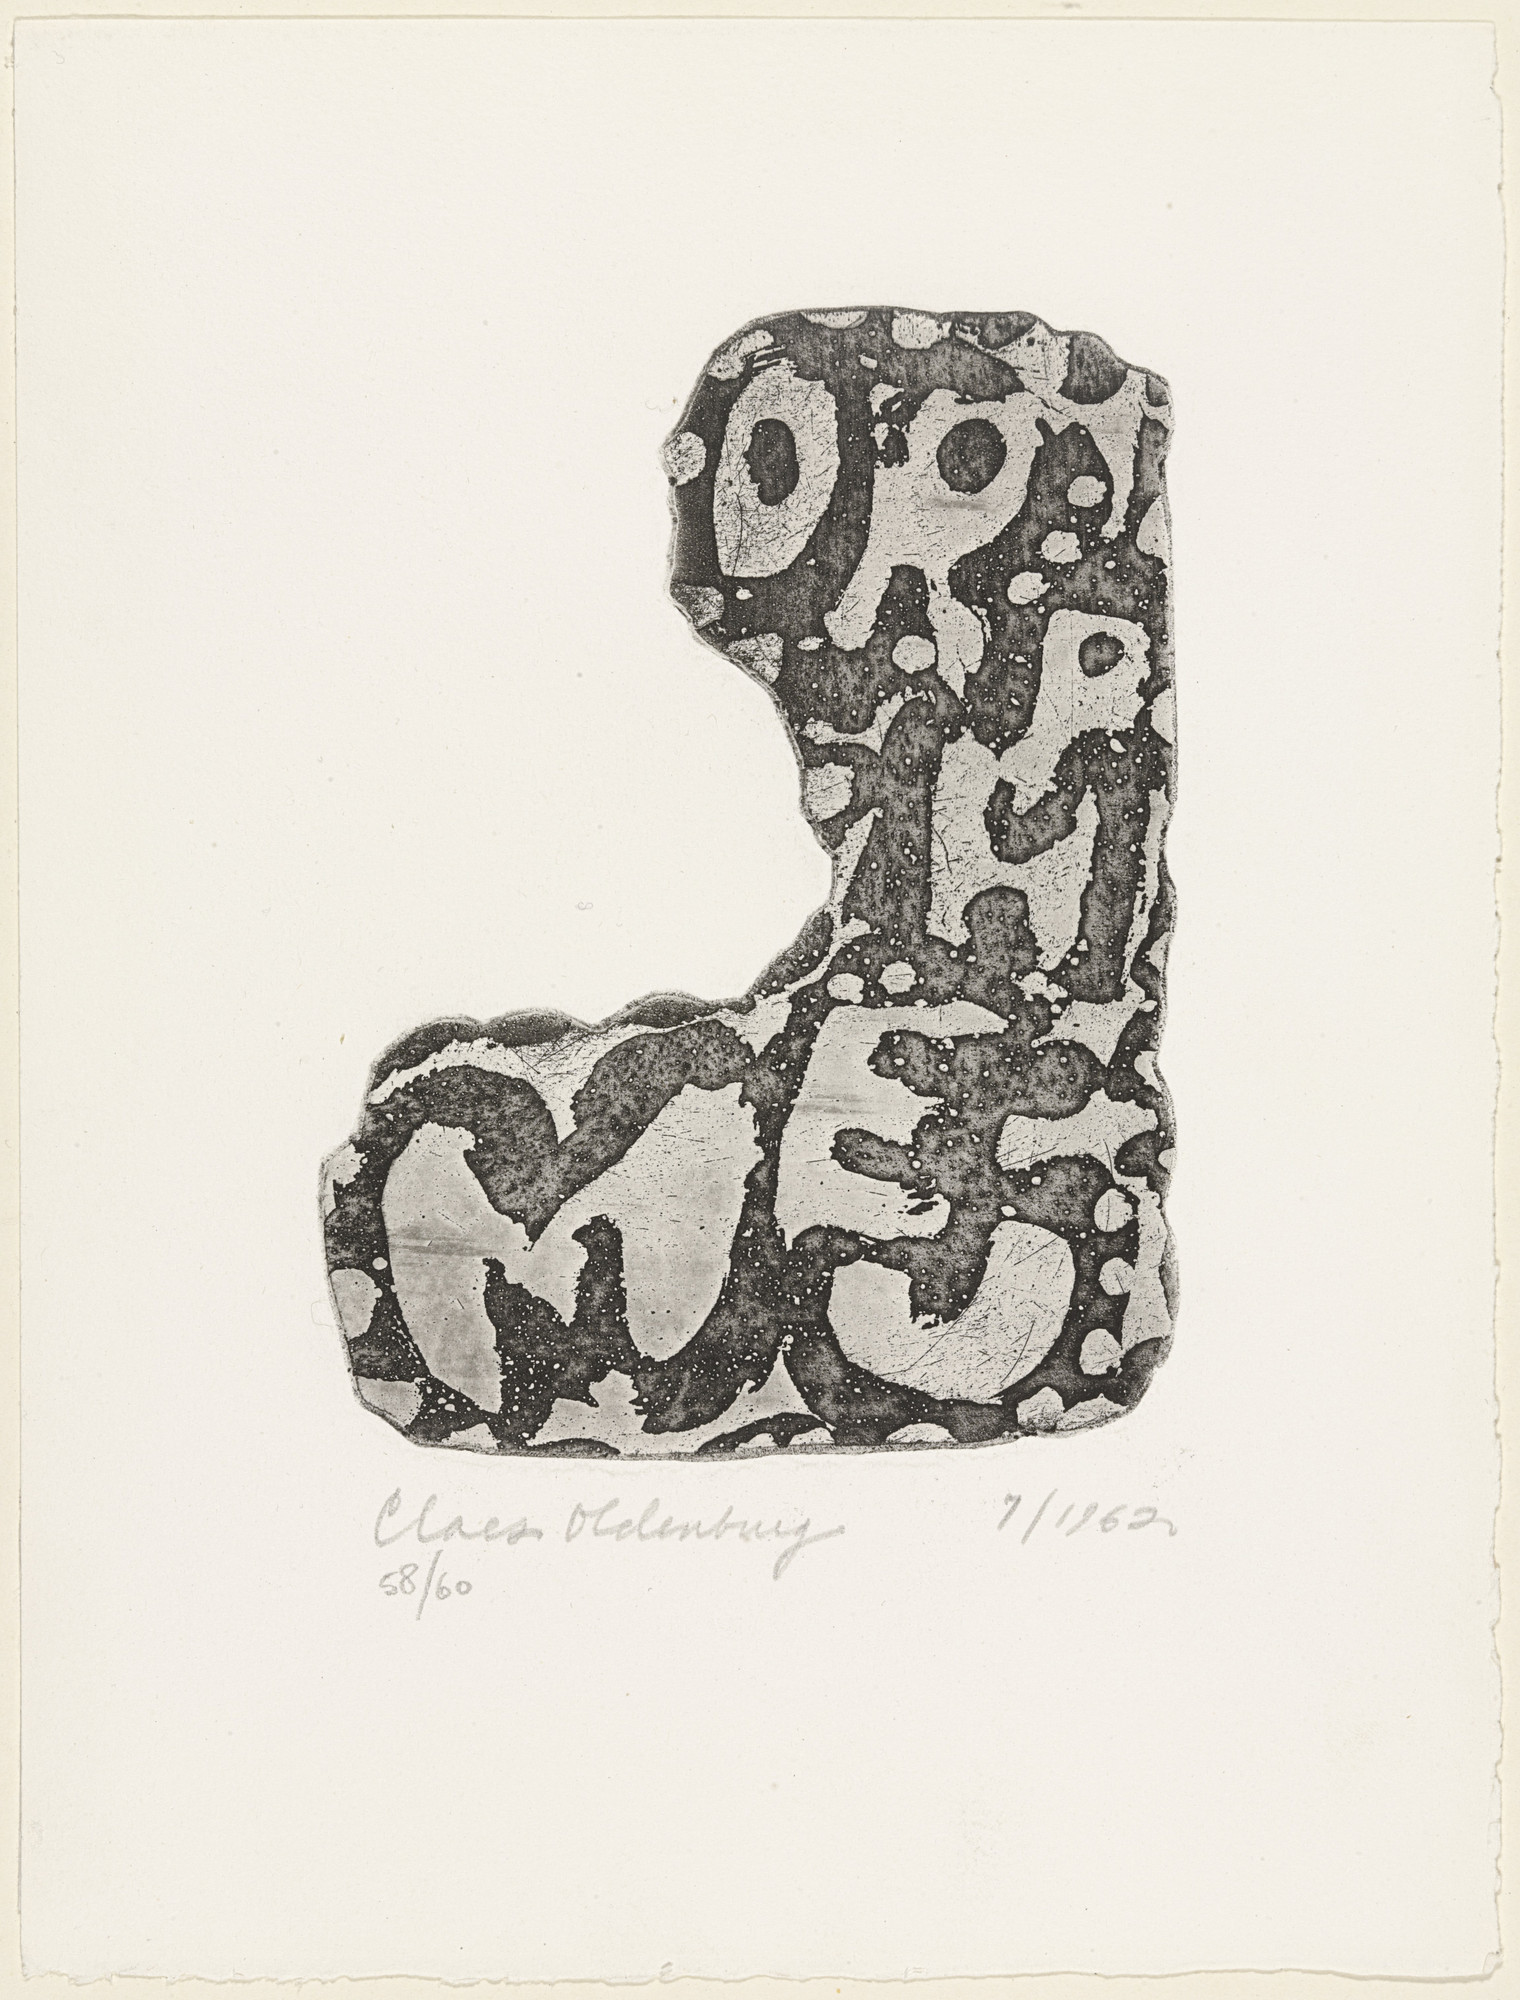 Claes Oldenburg. Orpheum Sign (plate 13) from The International Anthology of Contemporary Engraving: The International Avant-Garde, Volume 5: America Discovered (Anthologia internazionale dell'incisione contemporanea: L'Avanguardia internazionale: Volume 5: Scoperta dell'America). 1962, published 1964